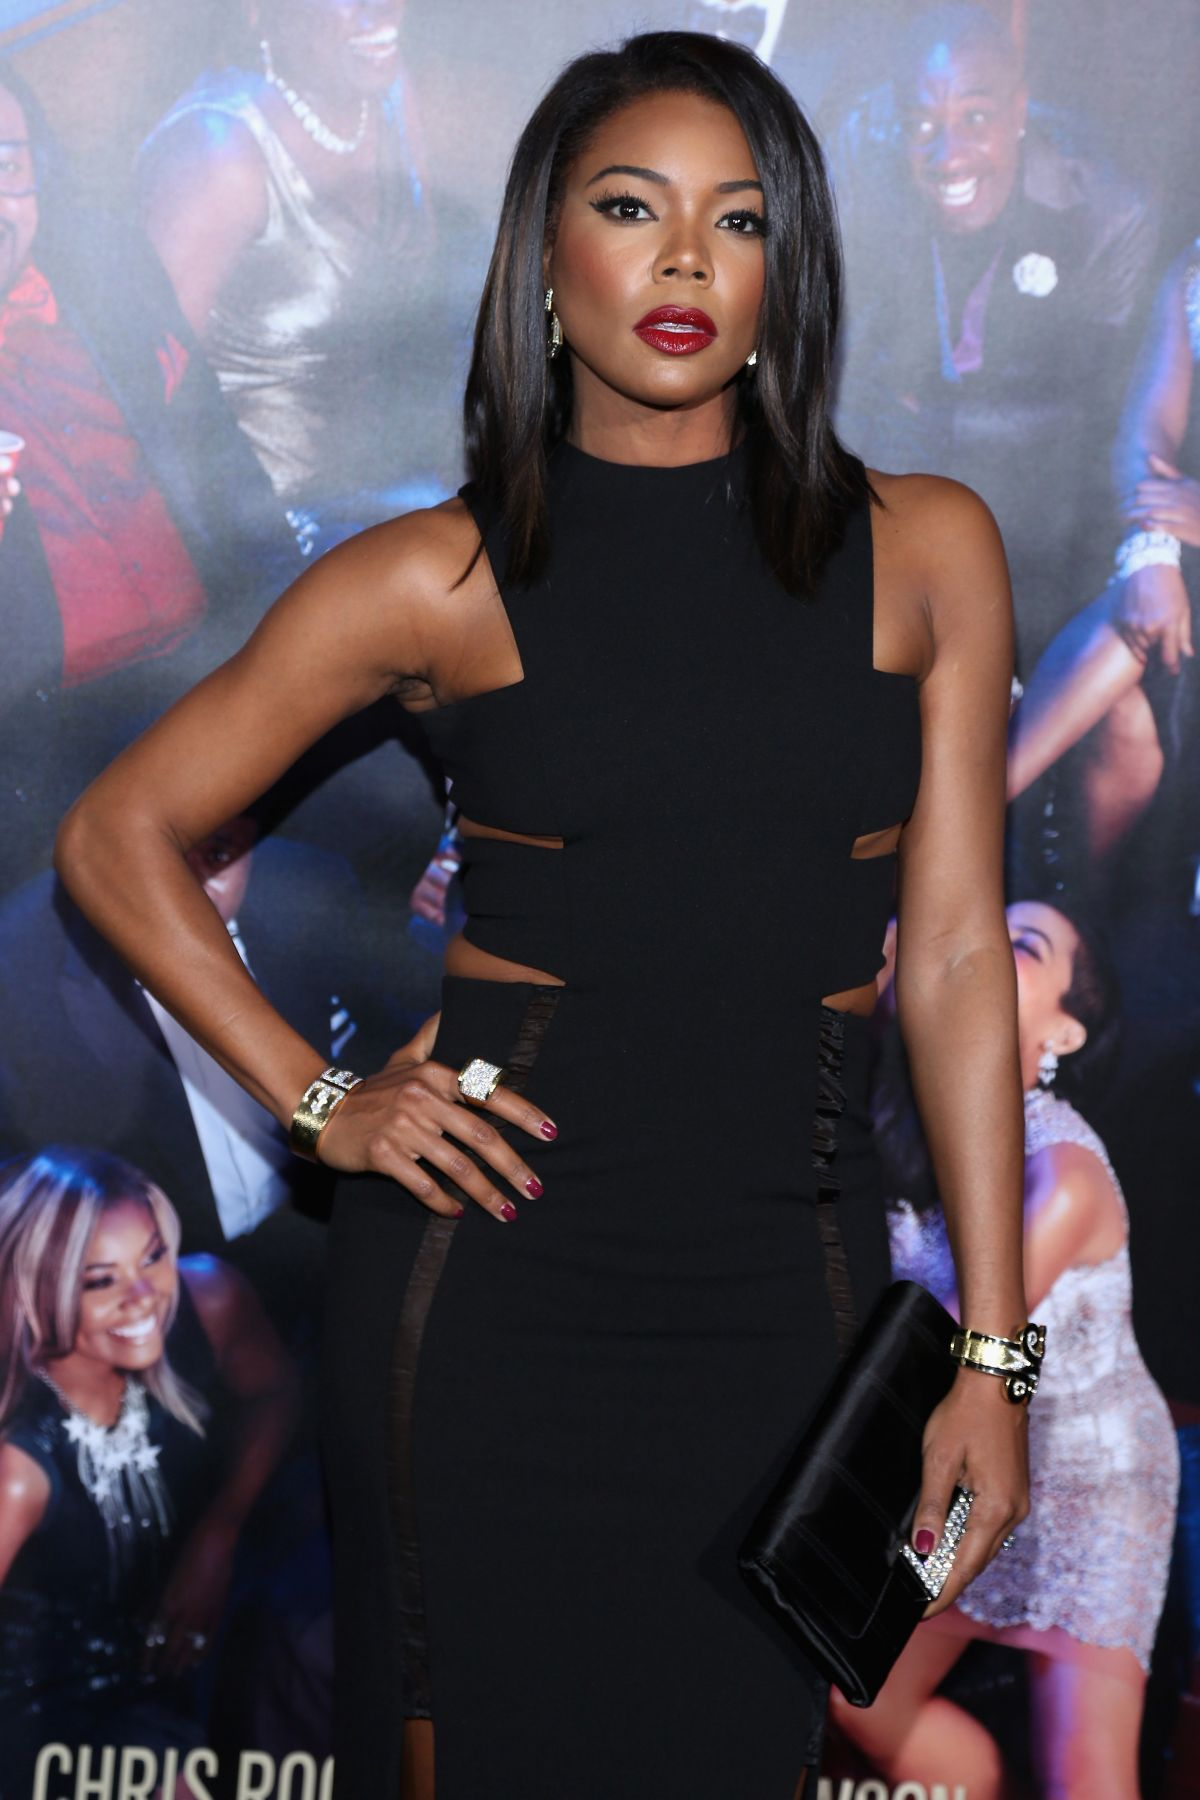 gabrielle-union-at-top-five-premiere-in-new-york_1